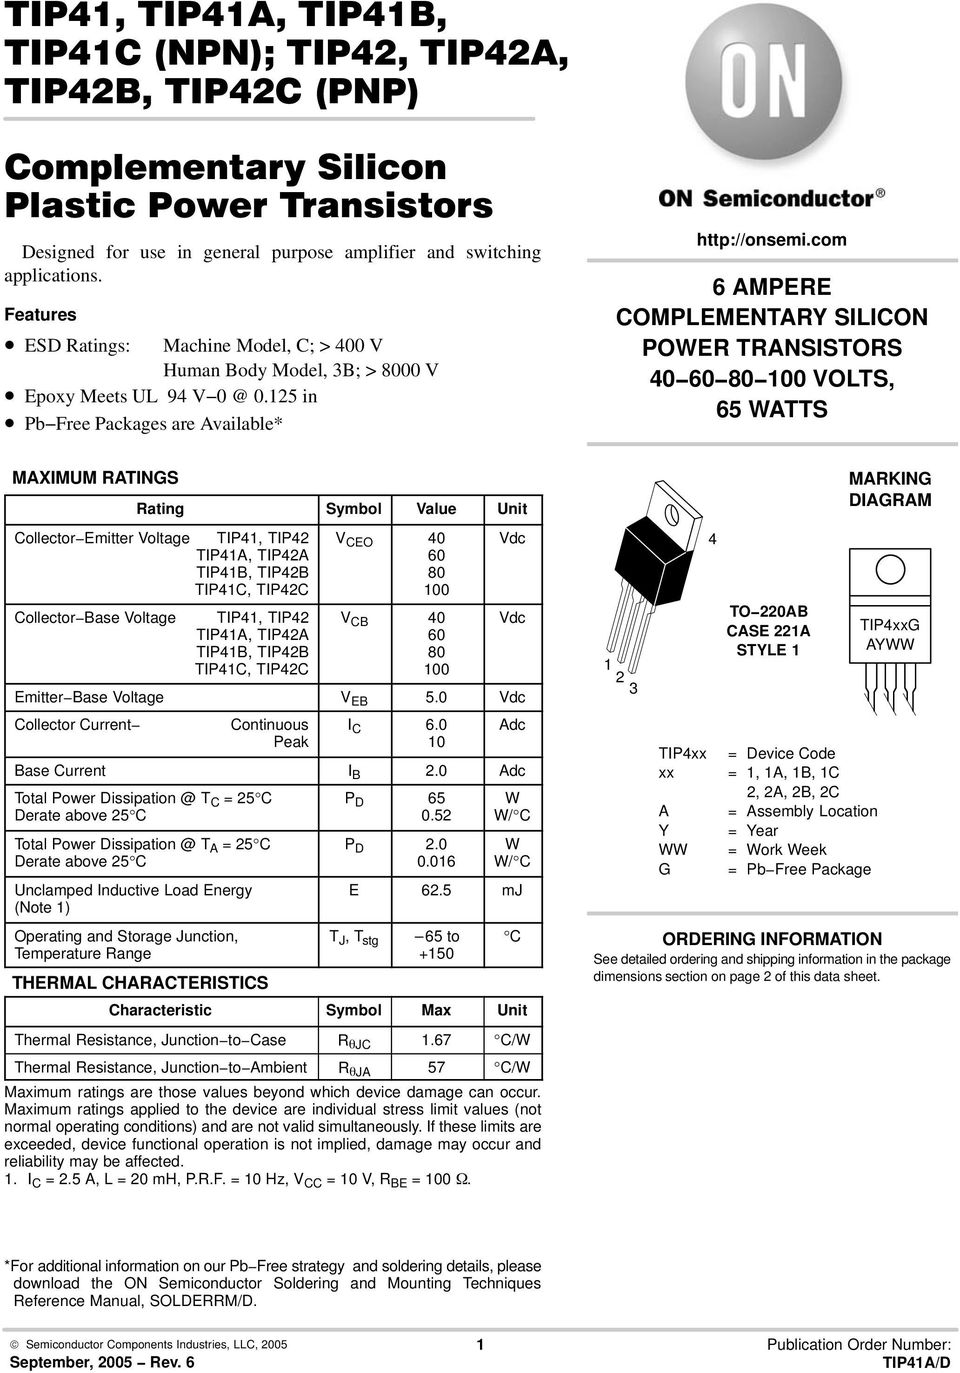 hight resolution of 125 in pbfree packages are available 6 ampere complementary silicon power transistors 4681 volts